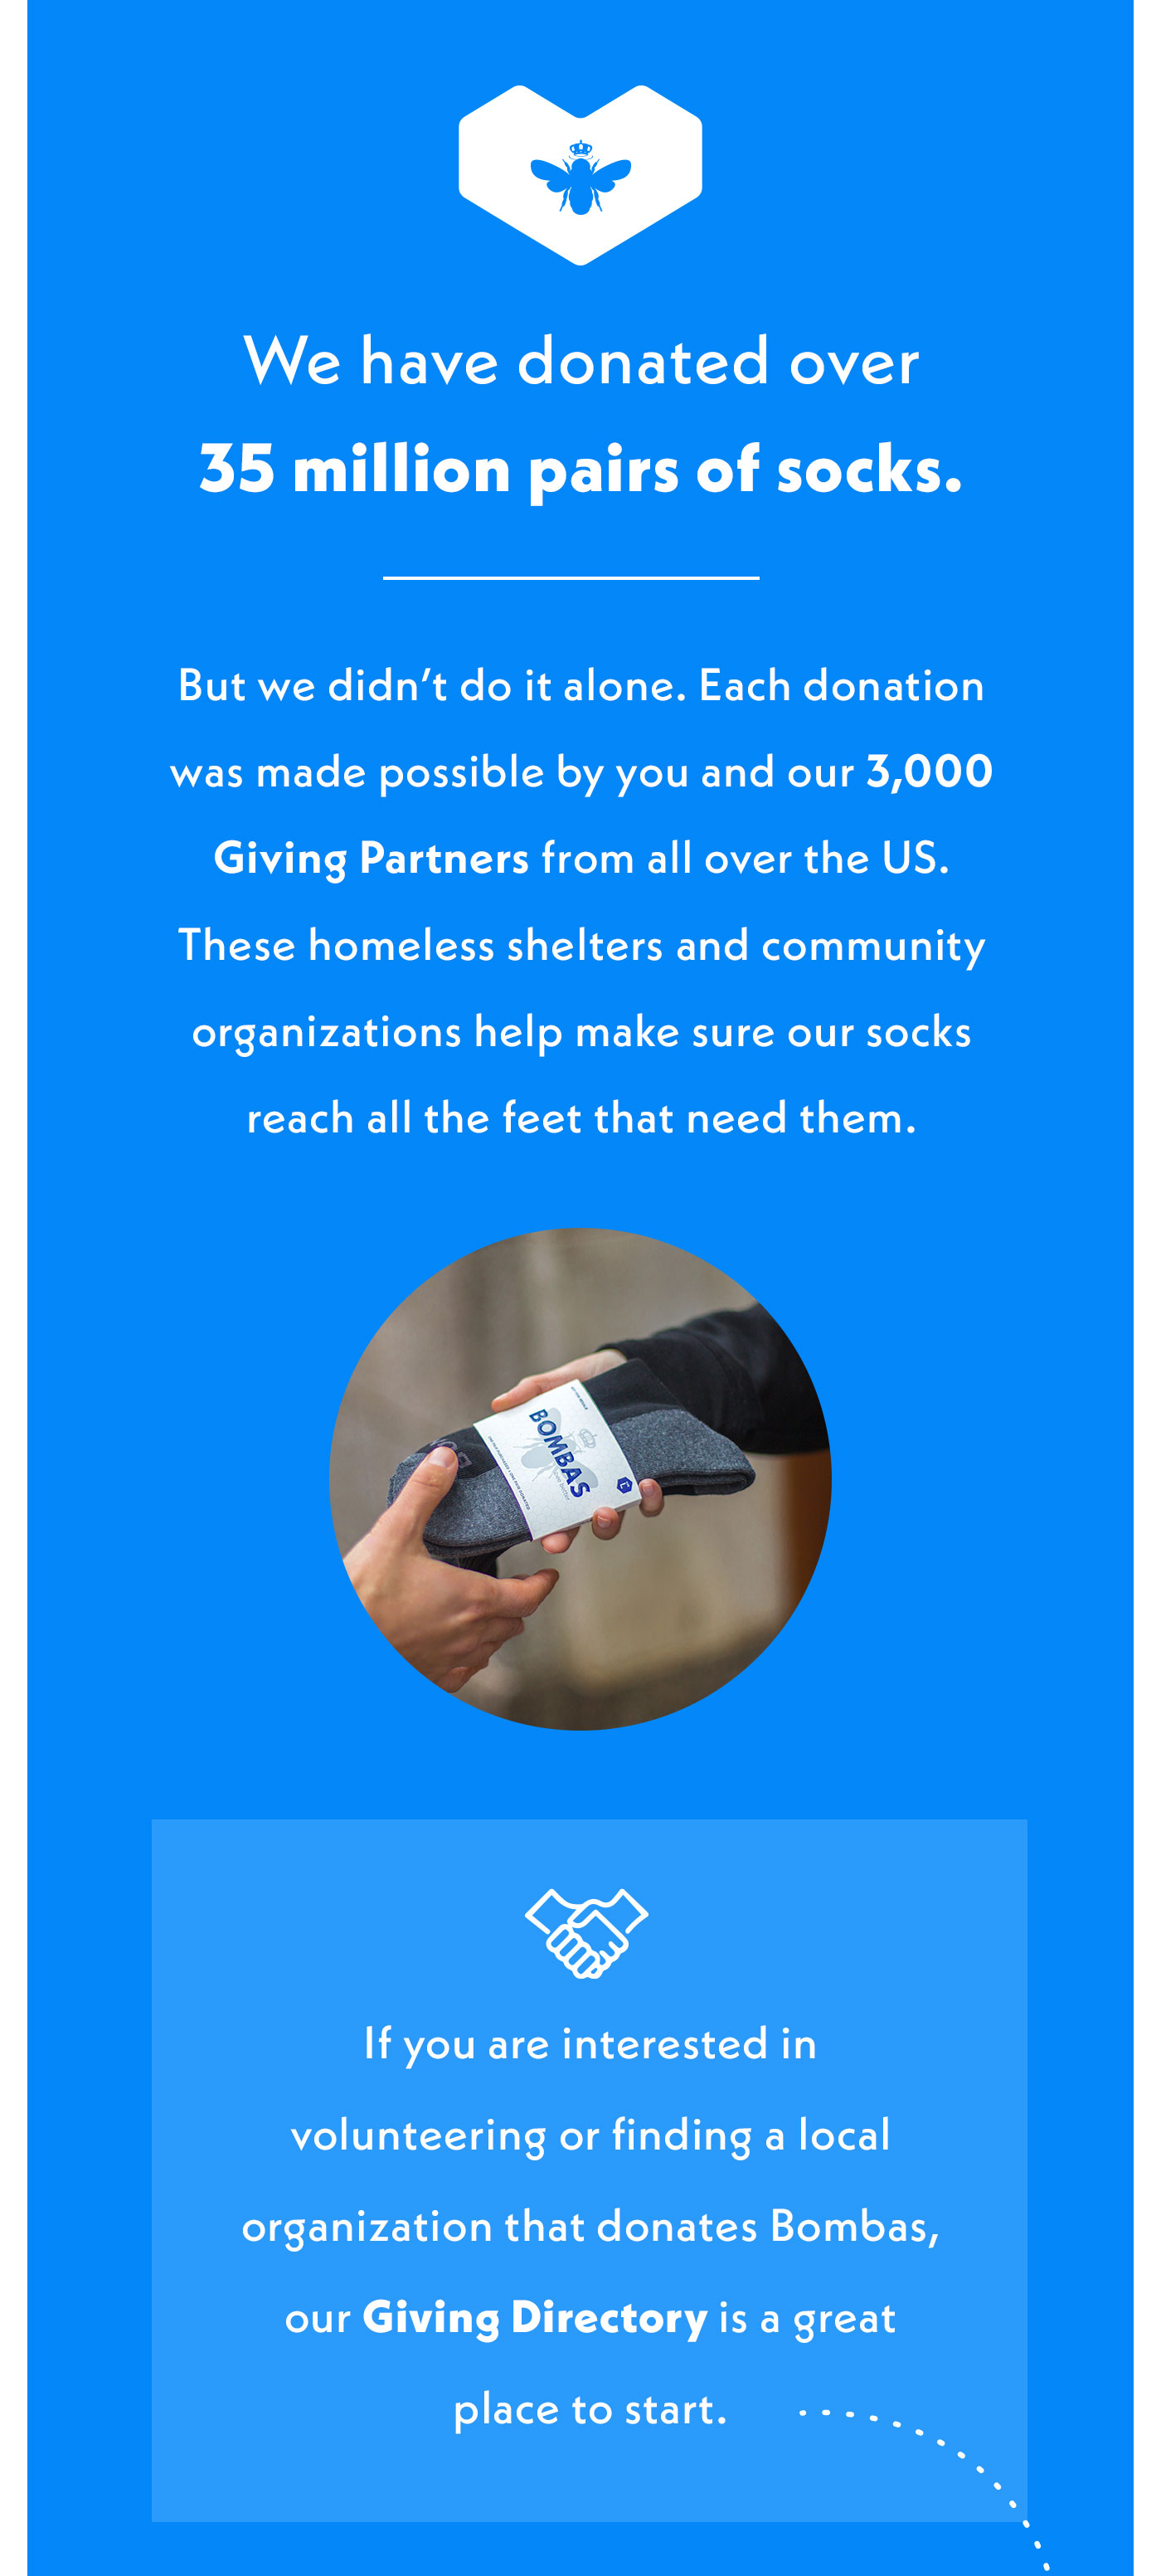 We have donated over 35 million pairs of socks. But we didn't do it alone. Each donation was made possible by you and our 3,000 Giving Partners from all over the US. These homeless shelters and community organizations help make sure our socks reach all the feet that need them. If you are interested in volunteering or finding a local organization that donates Bombas, our Giving Directory is a great place to start.